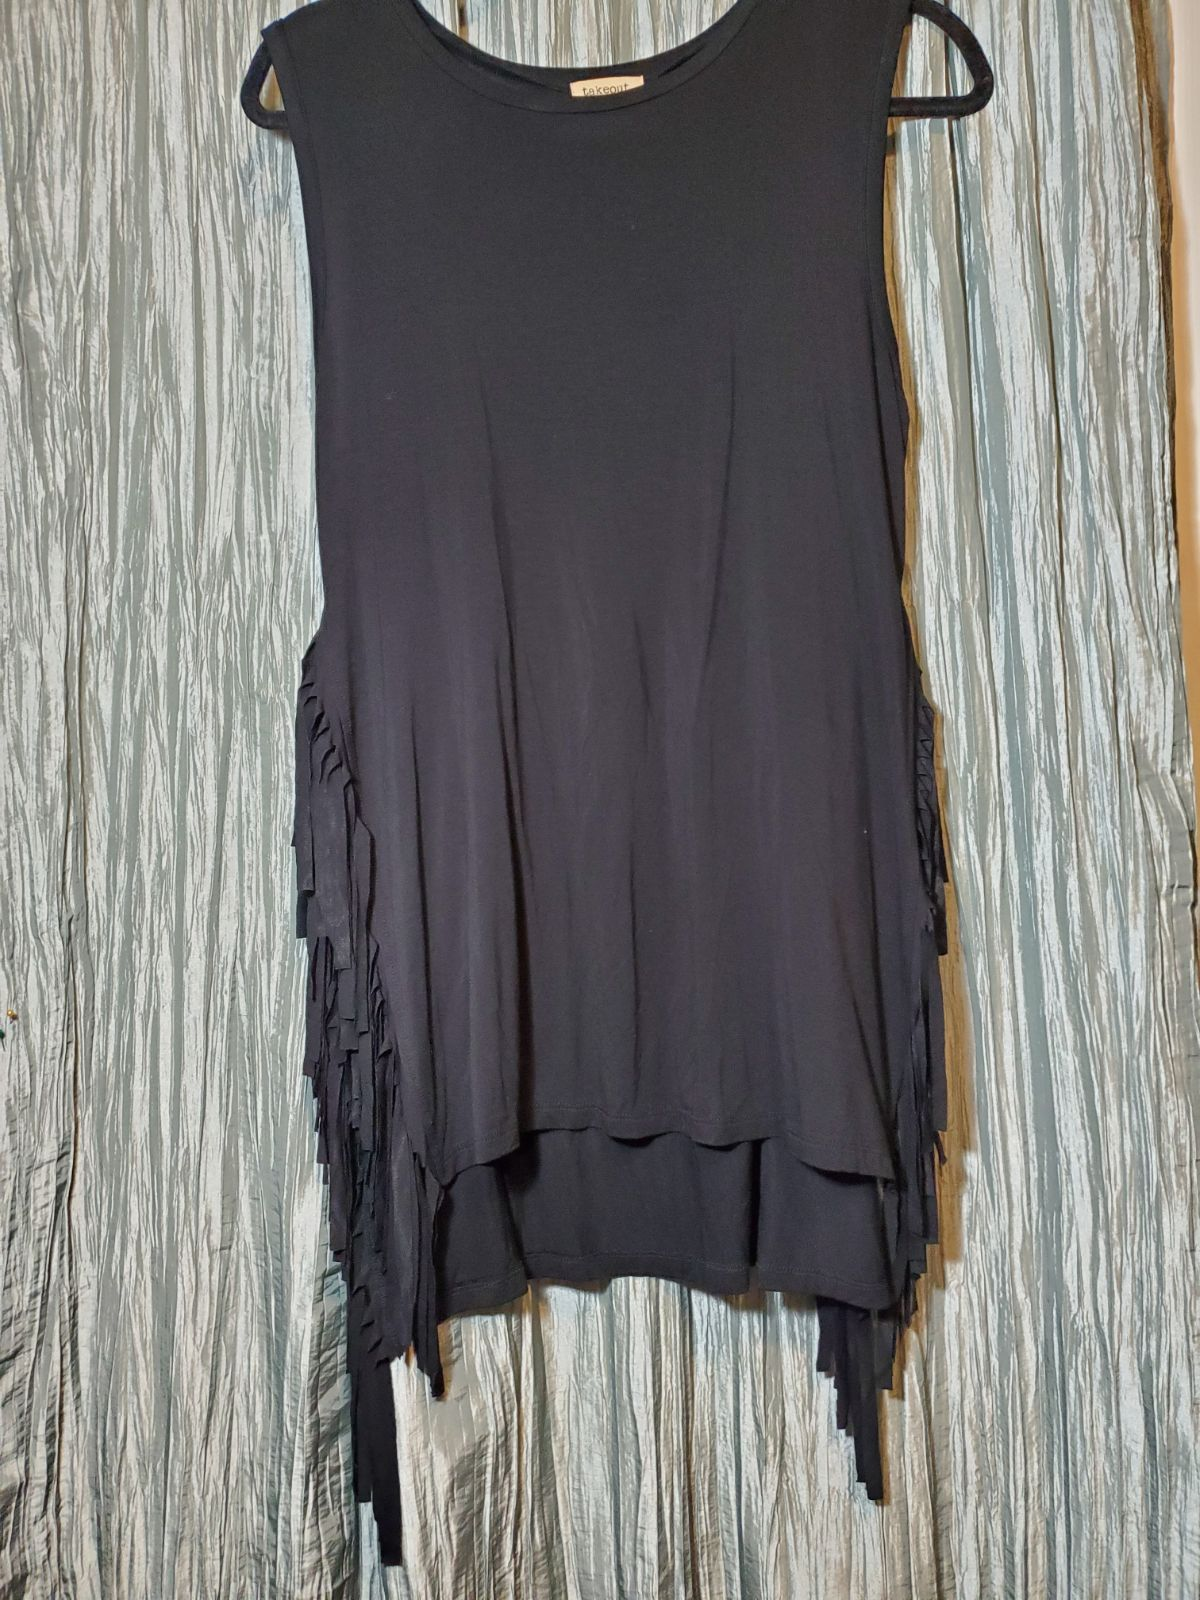 TAKEOUT Black Top With Side Fringes